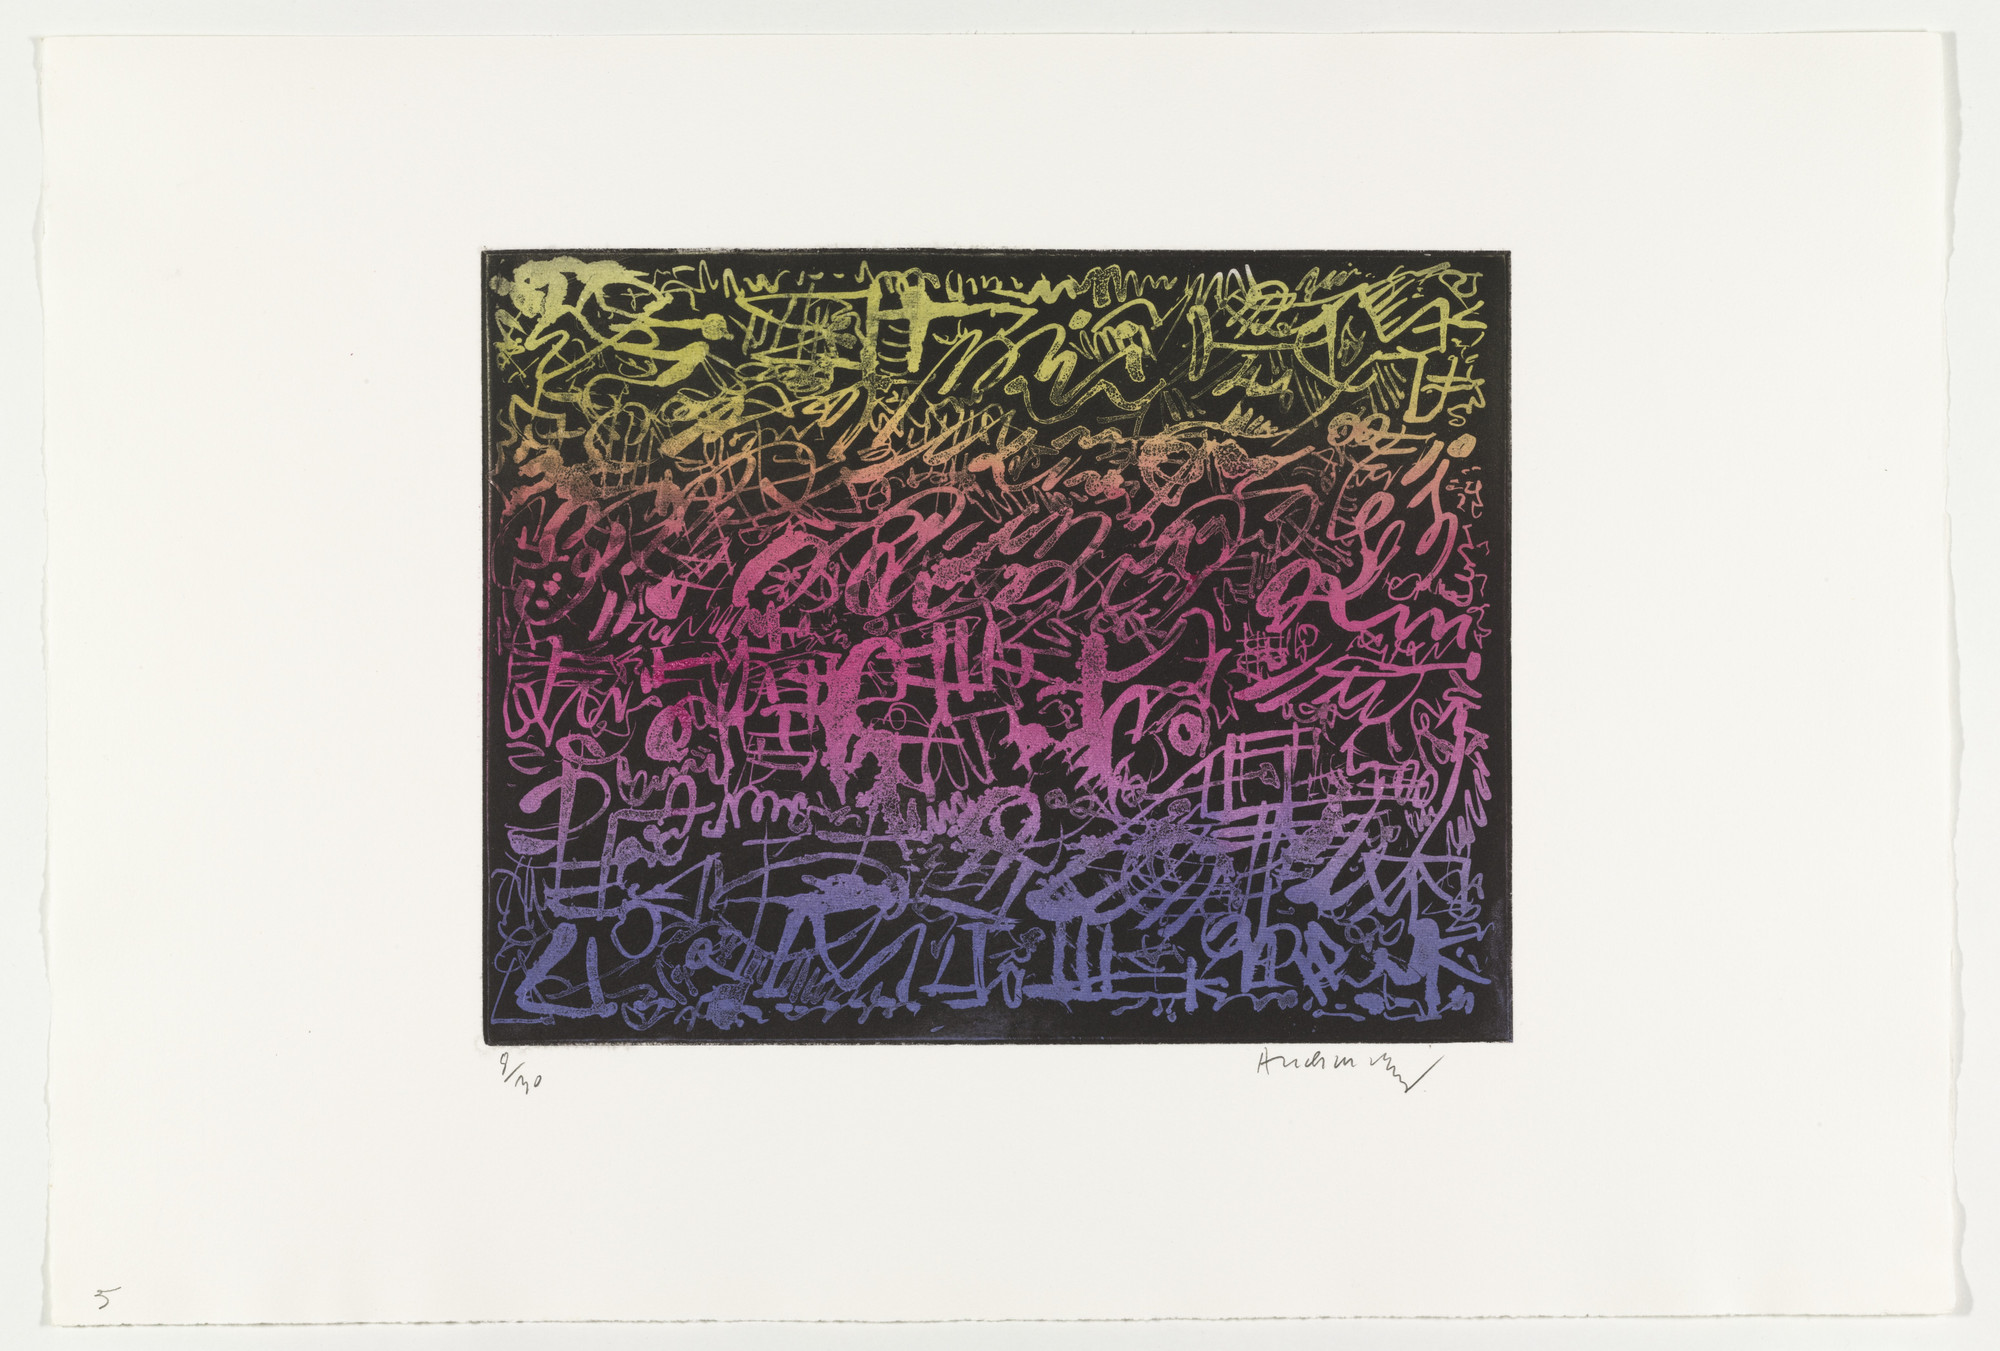 Pierre Alechinsky. Night (La nuit) from Hayterophilies. 1968 (plate executed 1952)